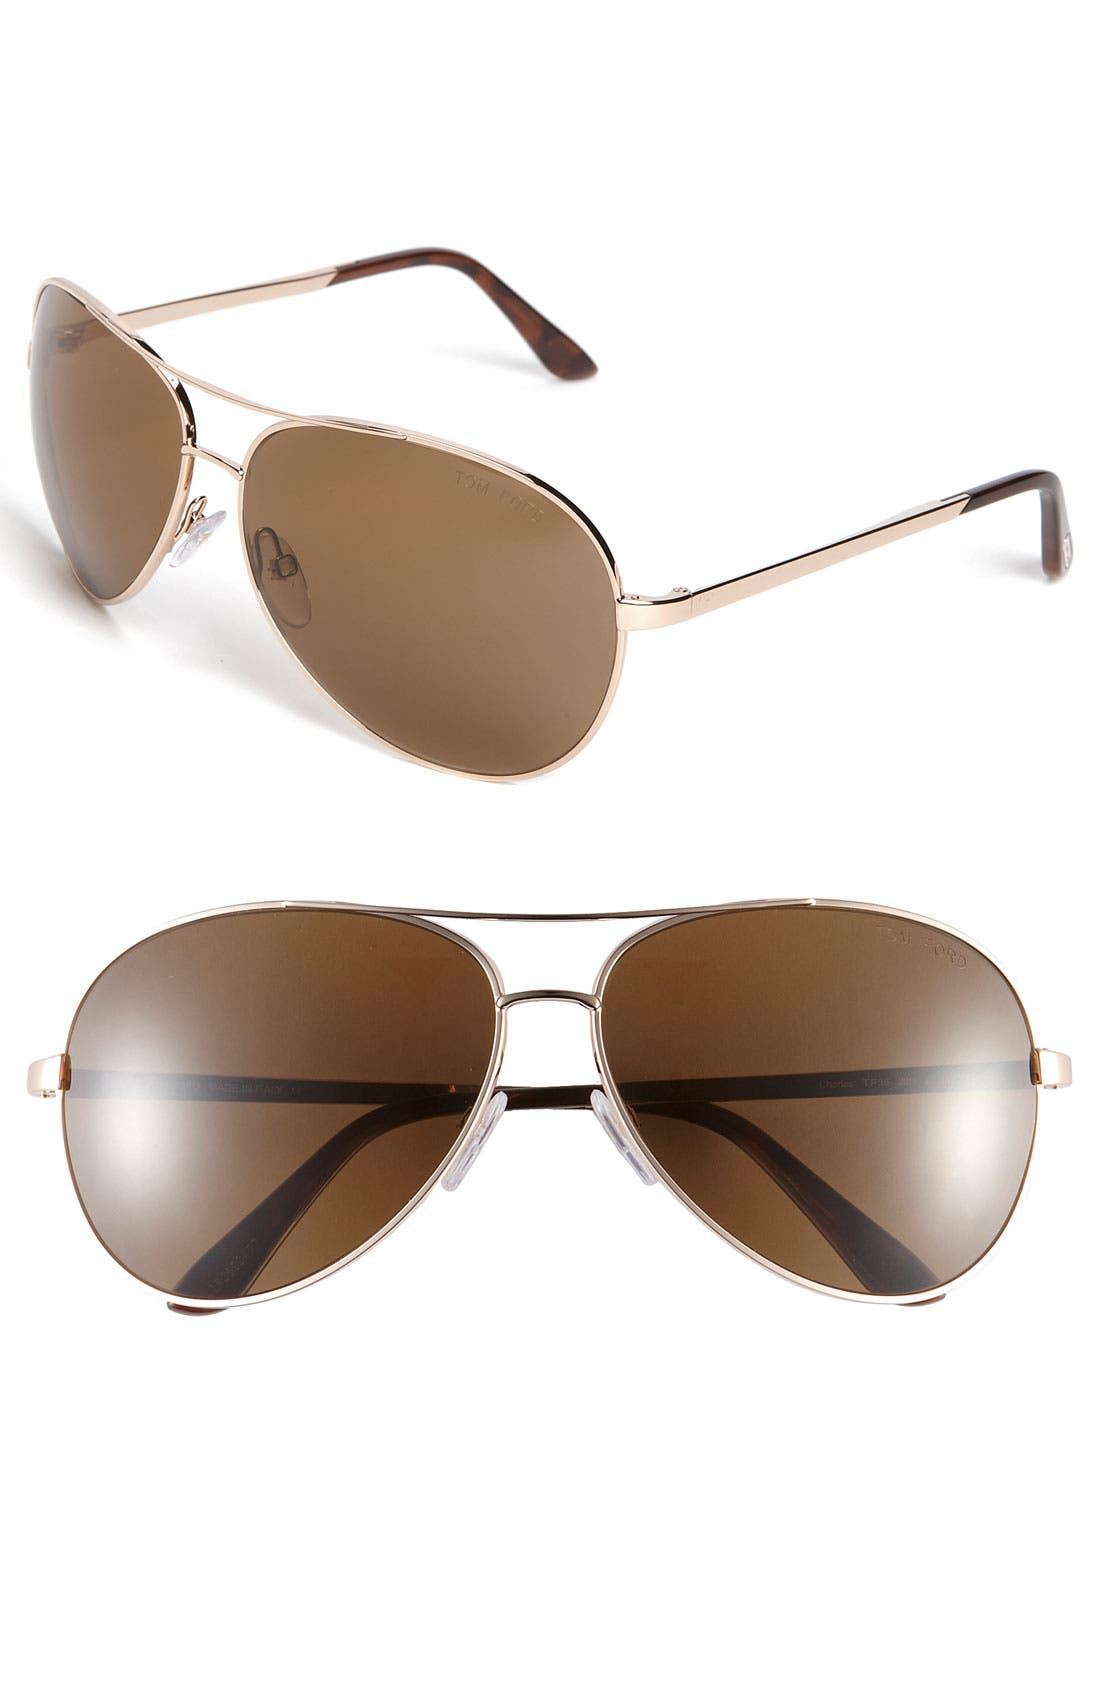 'Charles' 62mm Polarized Sunglasses,                             Main thumbnail 1, color,                             710